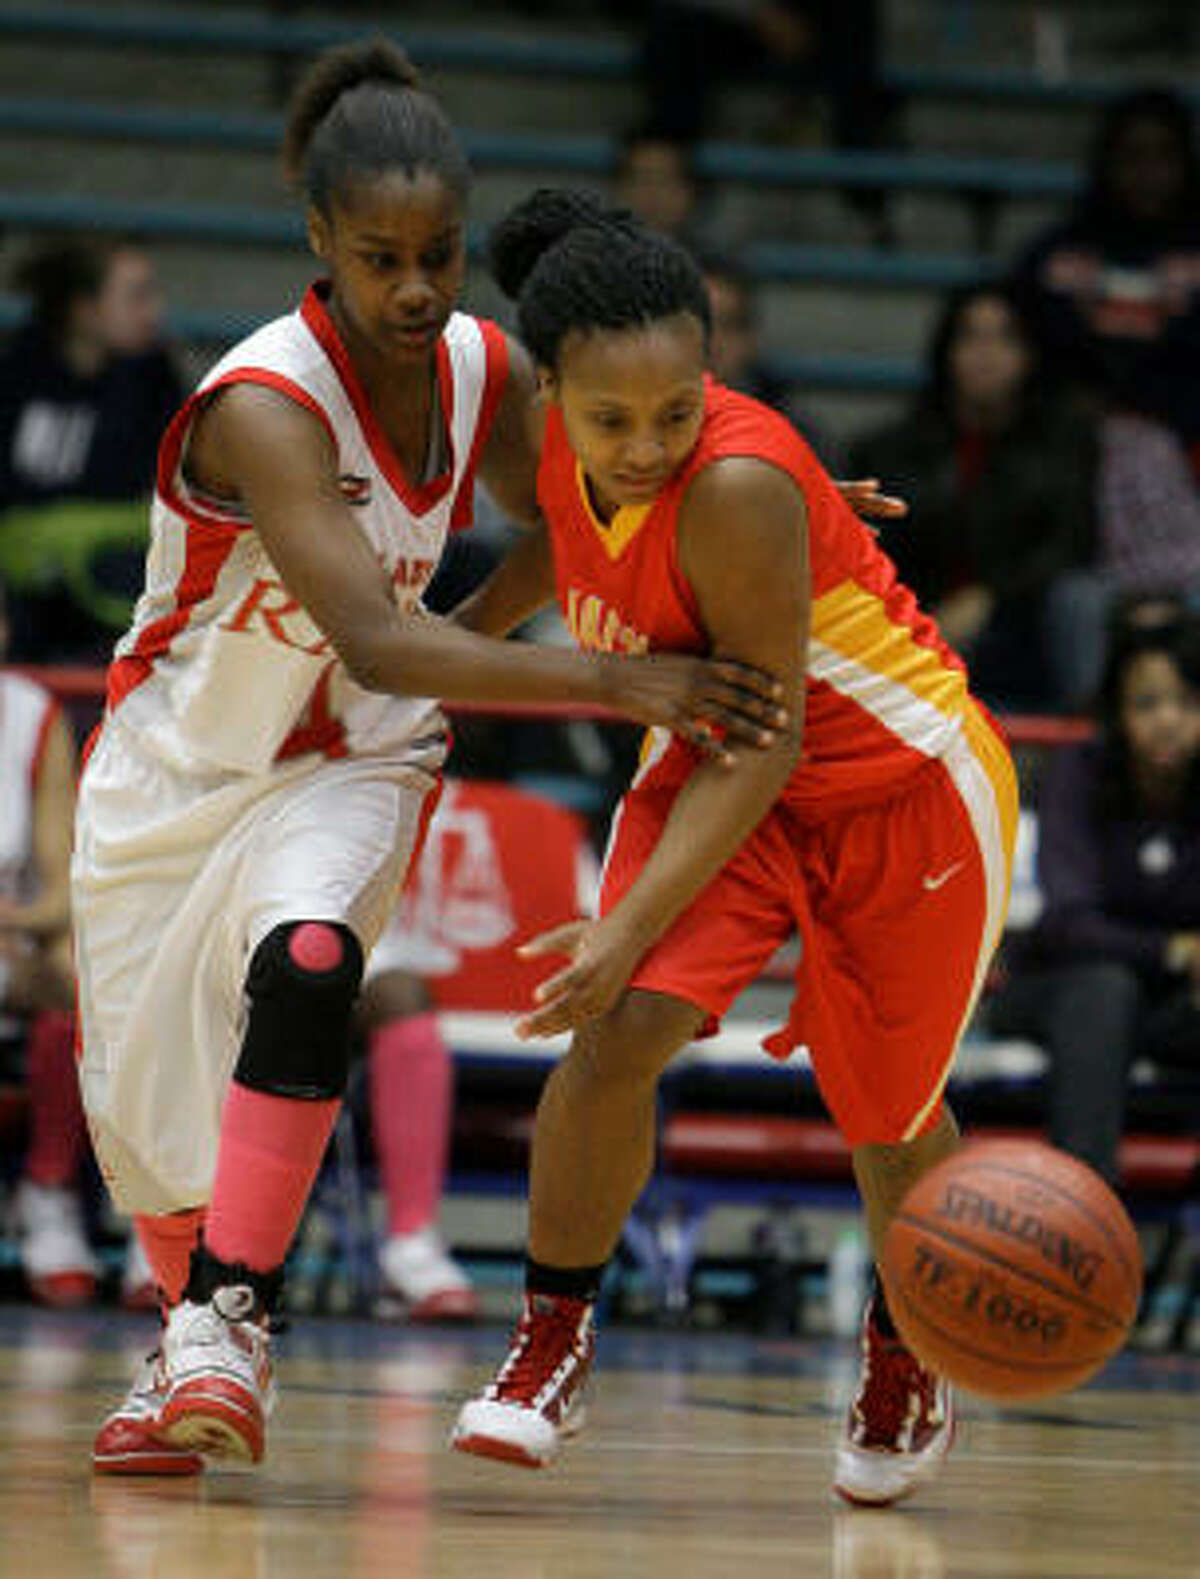 Waltrip's Chelsa Singer, left, and Yates' Jaeisha Johnson tangle as they go go for the ball.